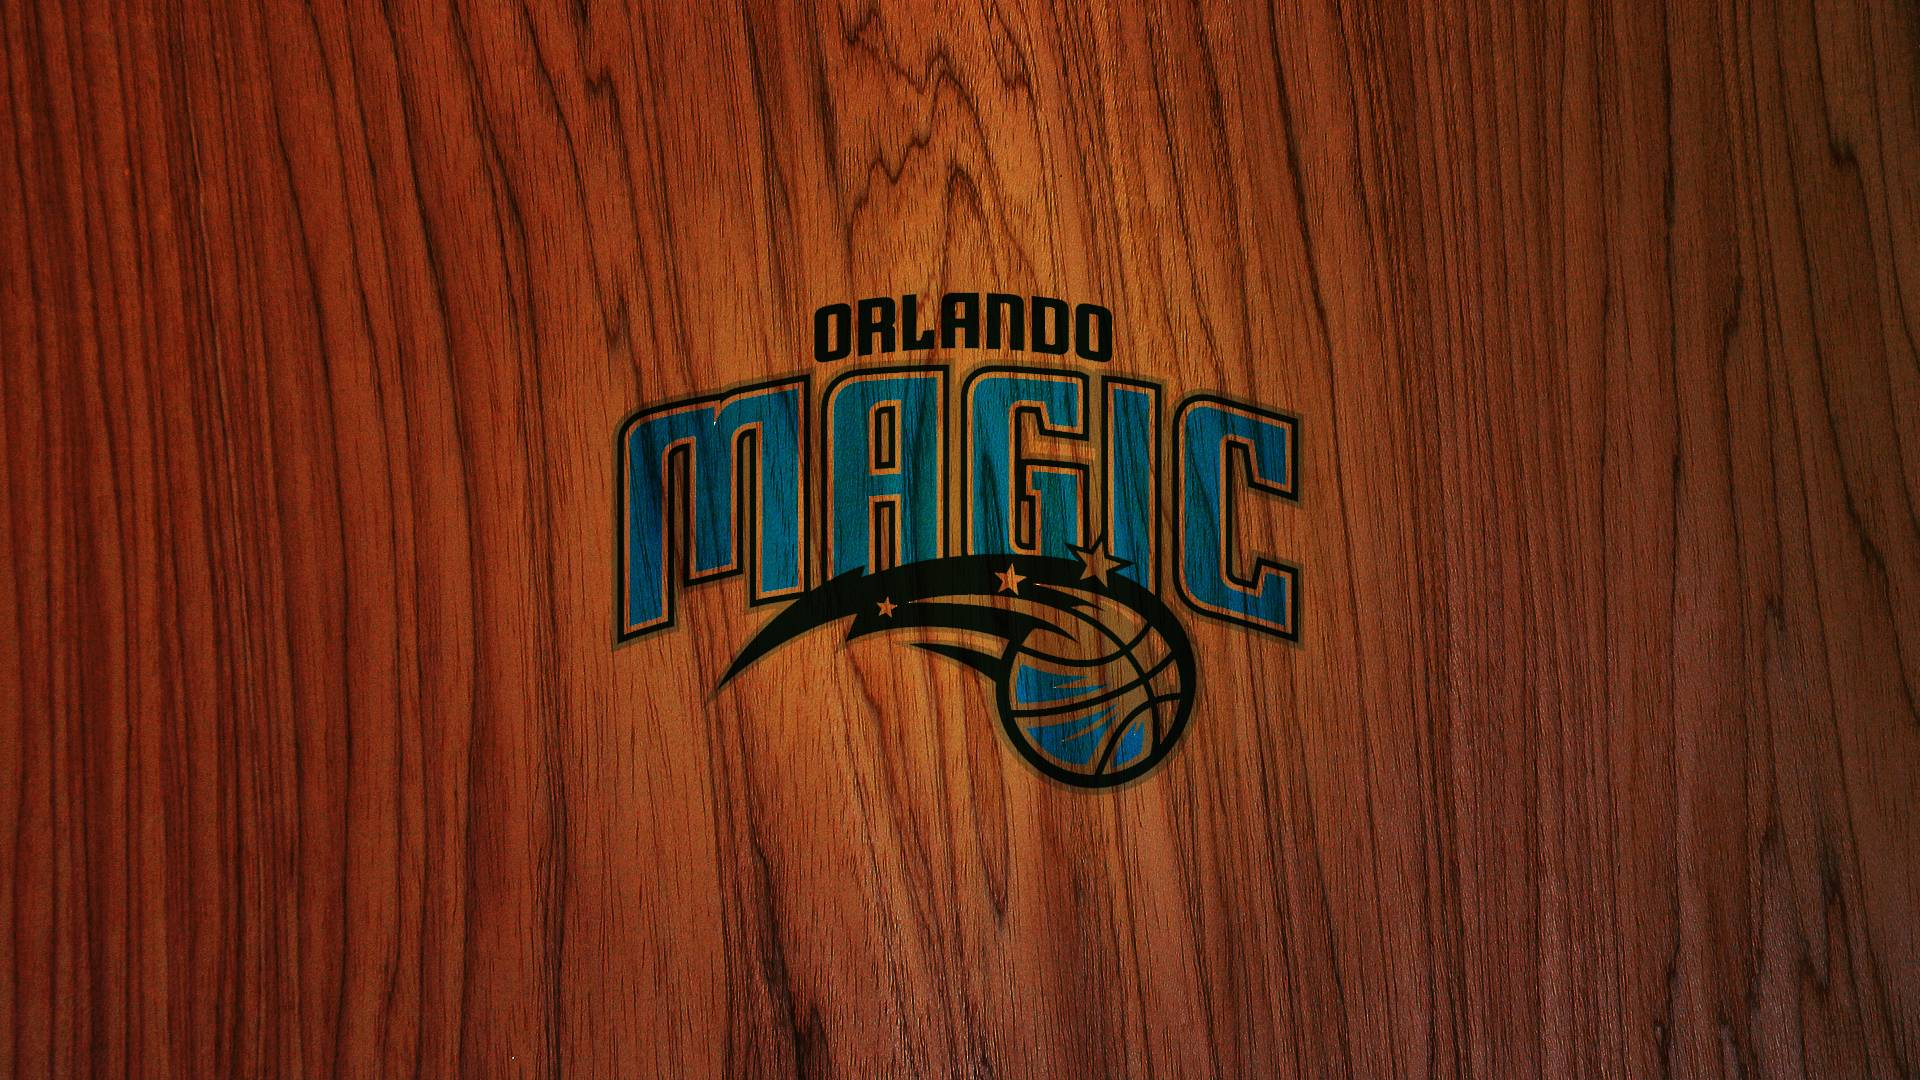 Orlando Magic NBA Hardwood Wallpapers by Abdi7451